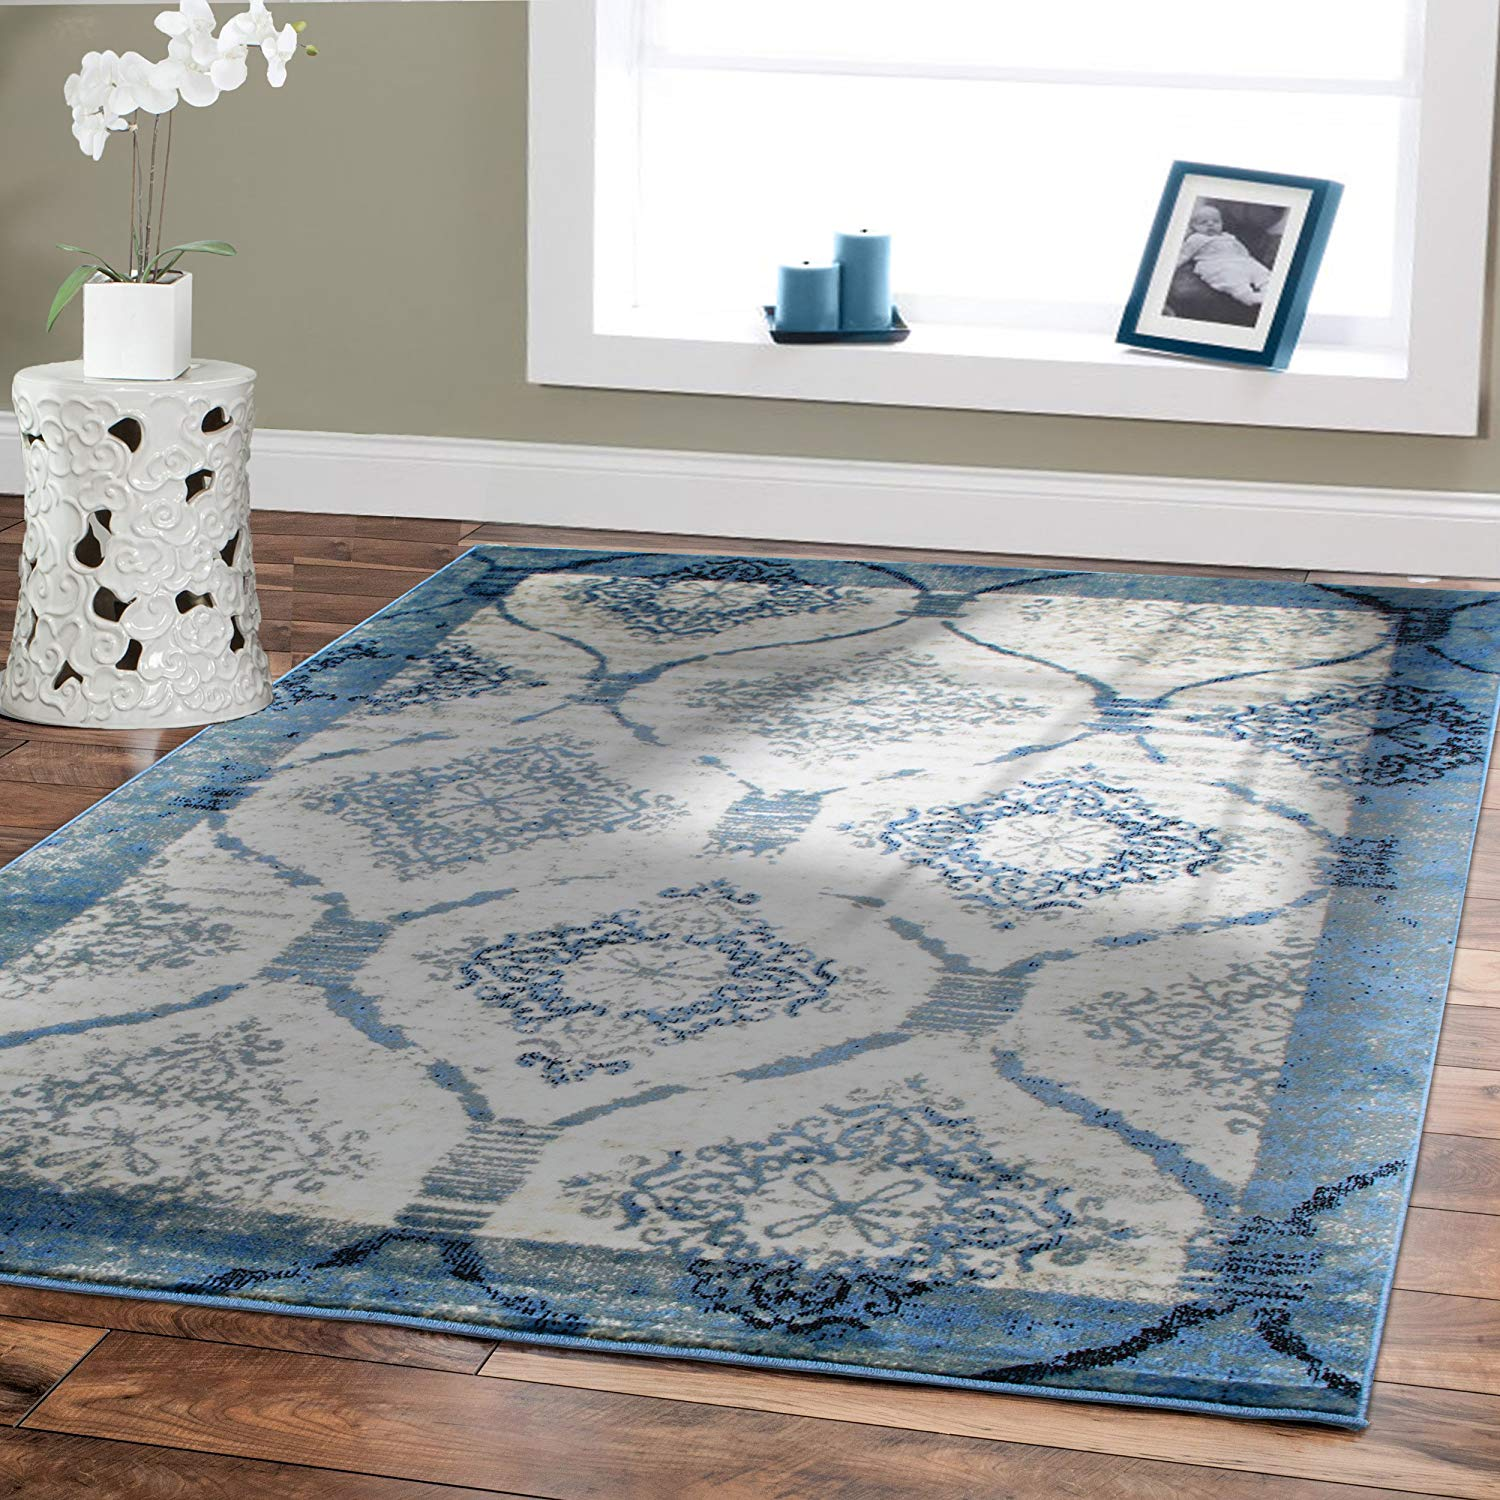 amazon.com: contemporary rugs for living room 5x8 blue area rug modern rugs JUZUGVK